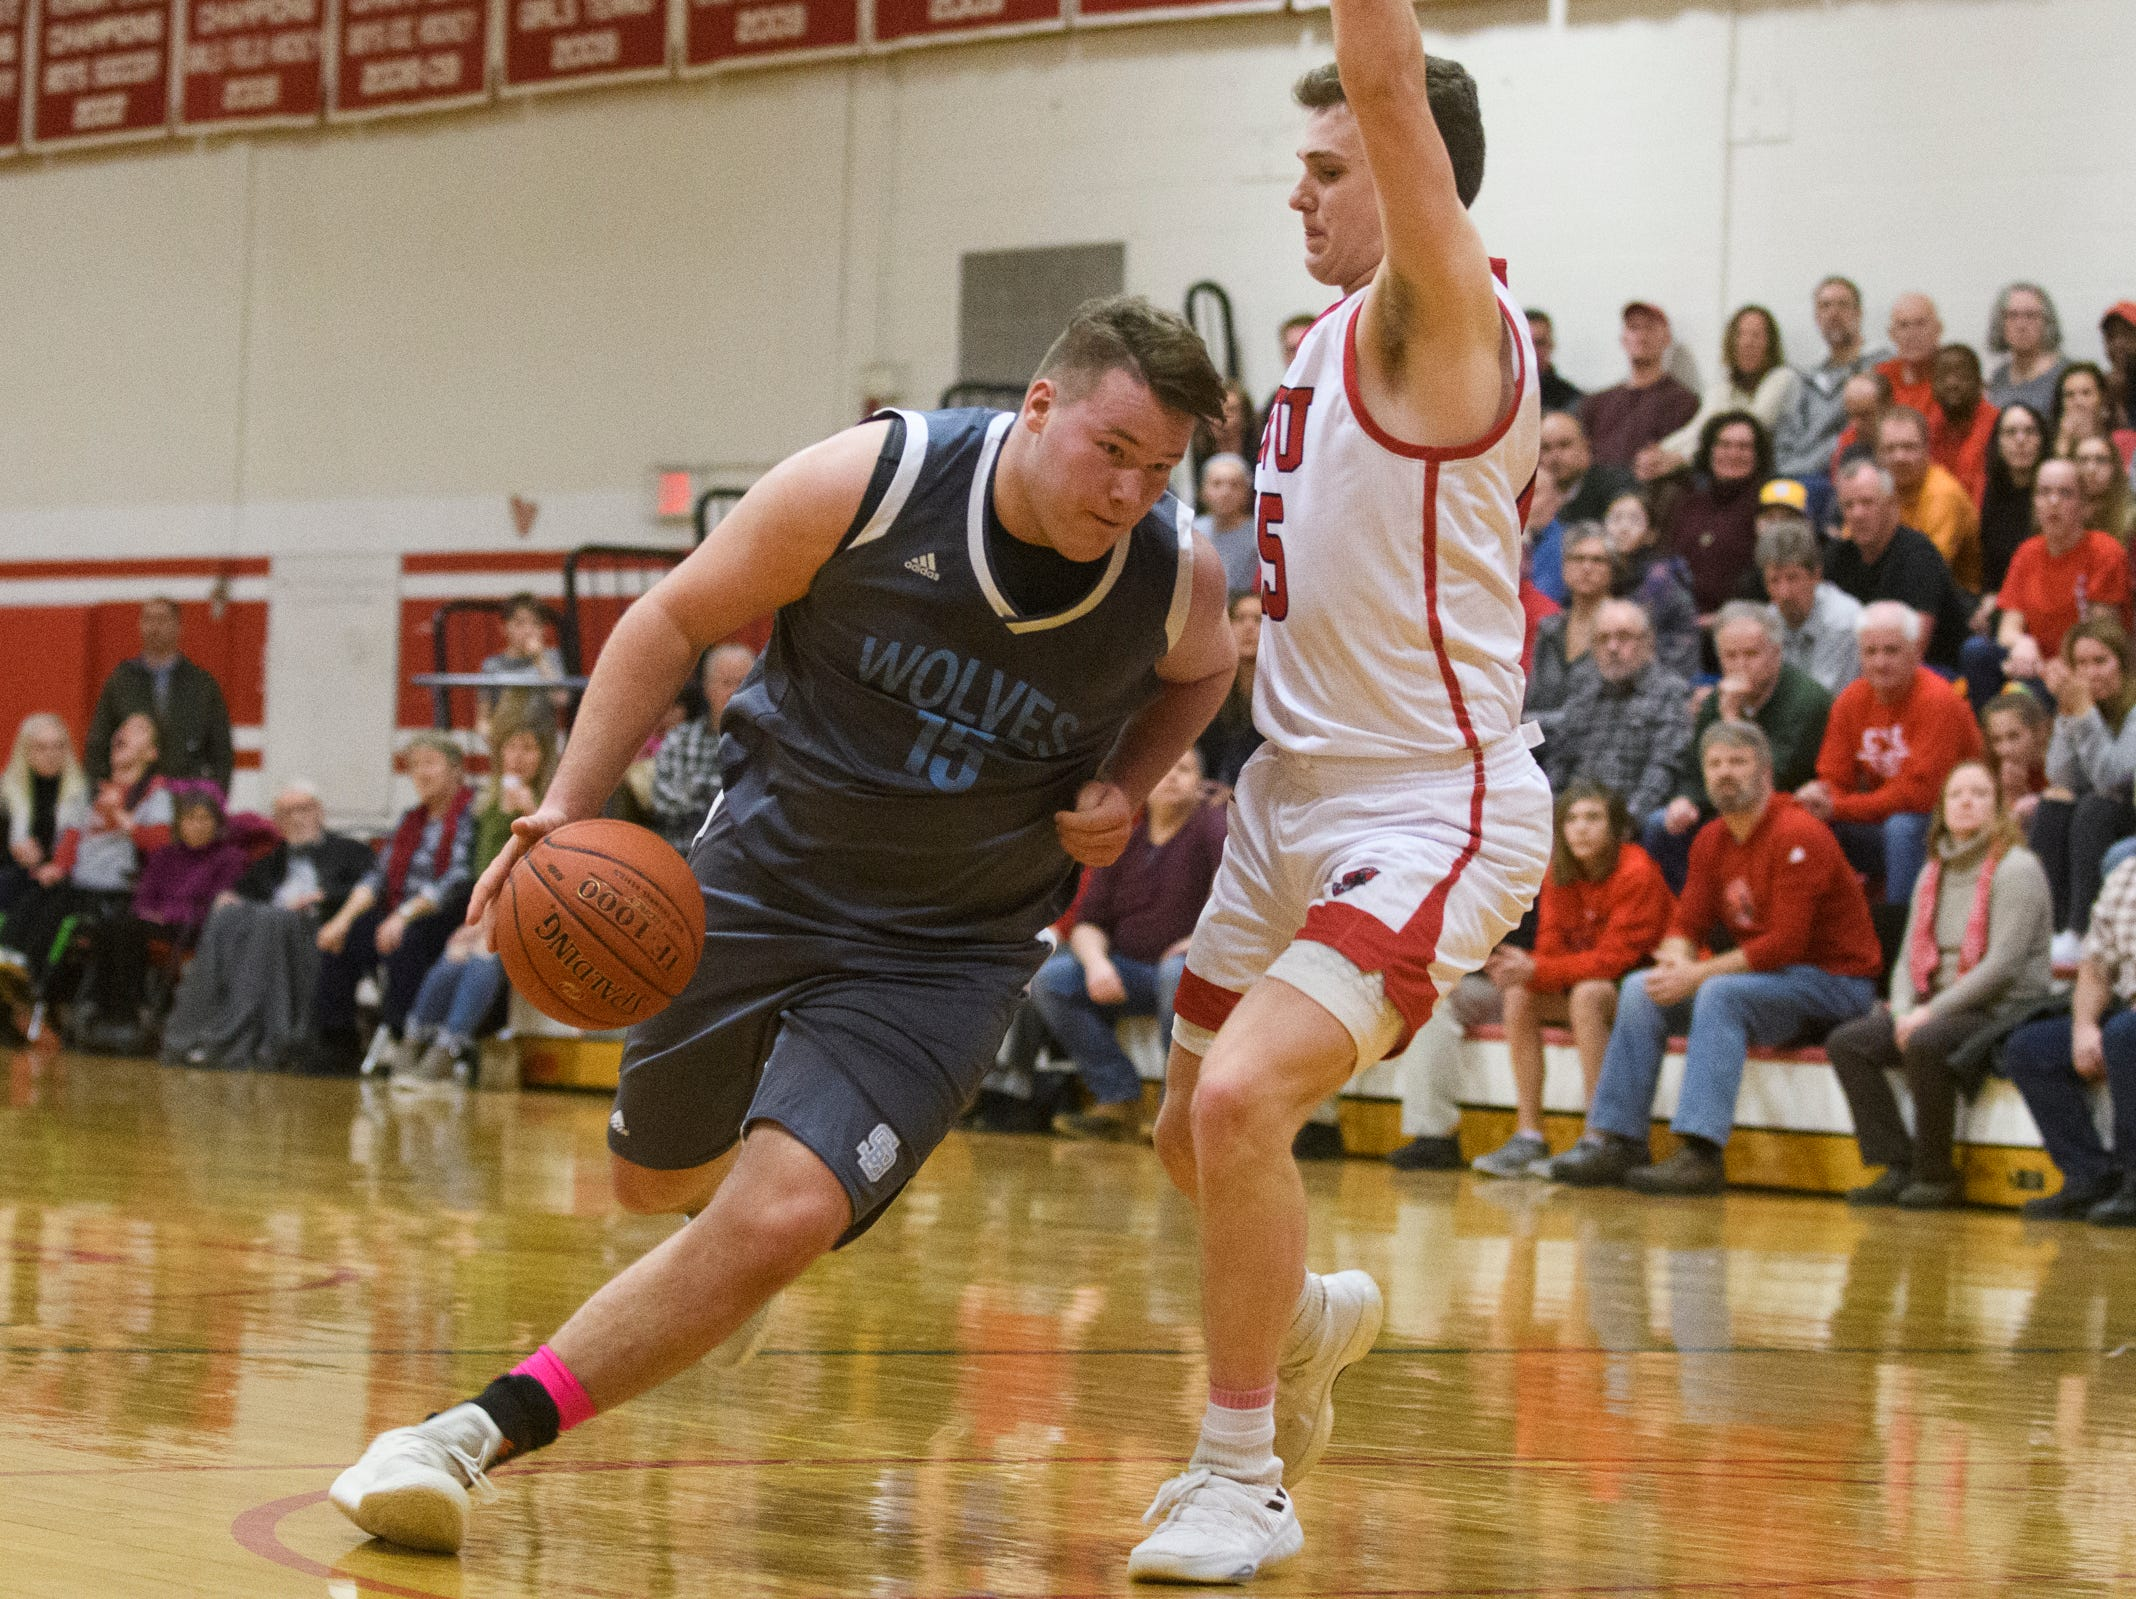 South Burlington's Owen McDonough (15) drives to the hoop past CVU's Bennett Cheer (15) during the boys basketball game between he South Burlington Wolves and the Champlain Valley Union Redhawks at CVU High School on Tuesday night March 5, 2019 in Hinesburg, Vermont.